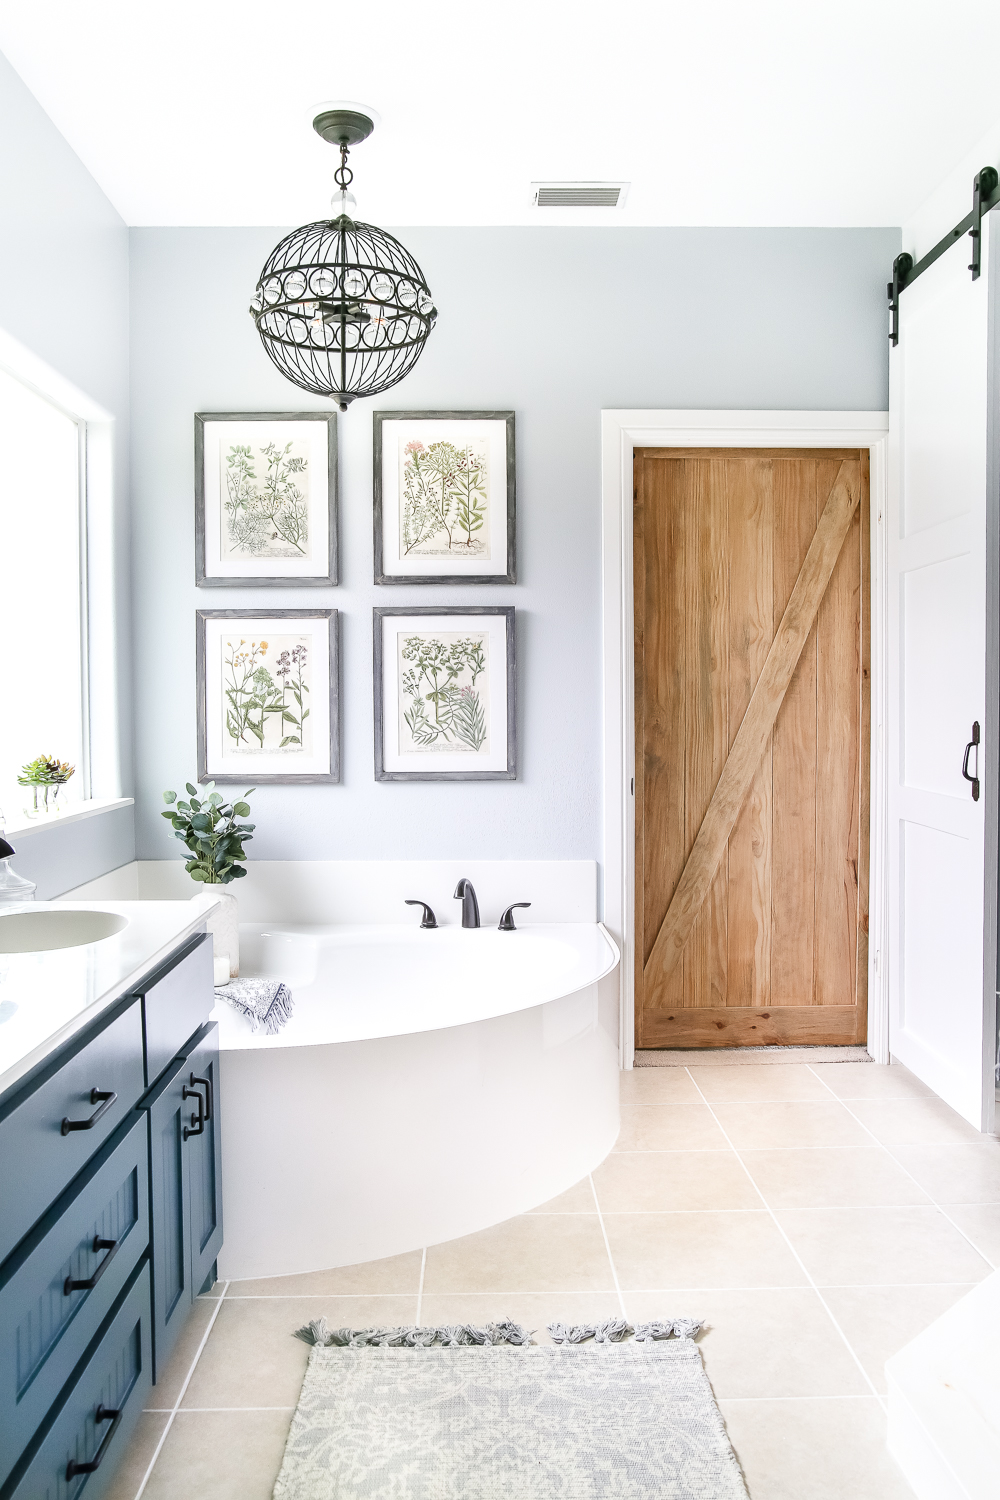 Bathrooms Archives ConfettiStyle - Cosmetic bathroom makeover